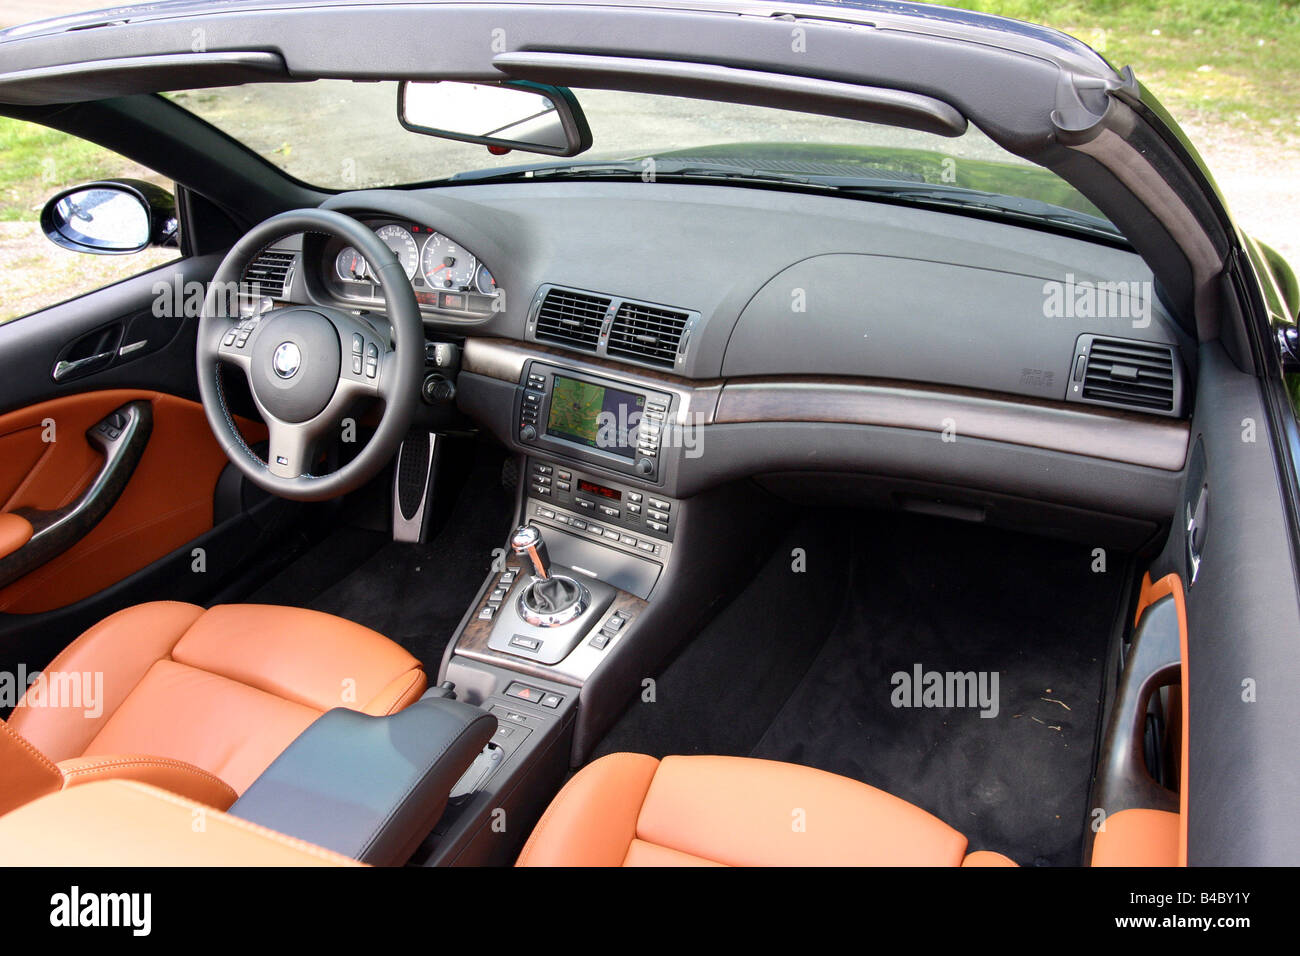 car bmw m3 convertible model year 2003 black open top interior stock photo 19931687 alamy. Black Bedroom Furniture Sets. Home Design Ideas